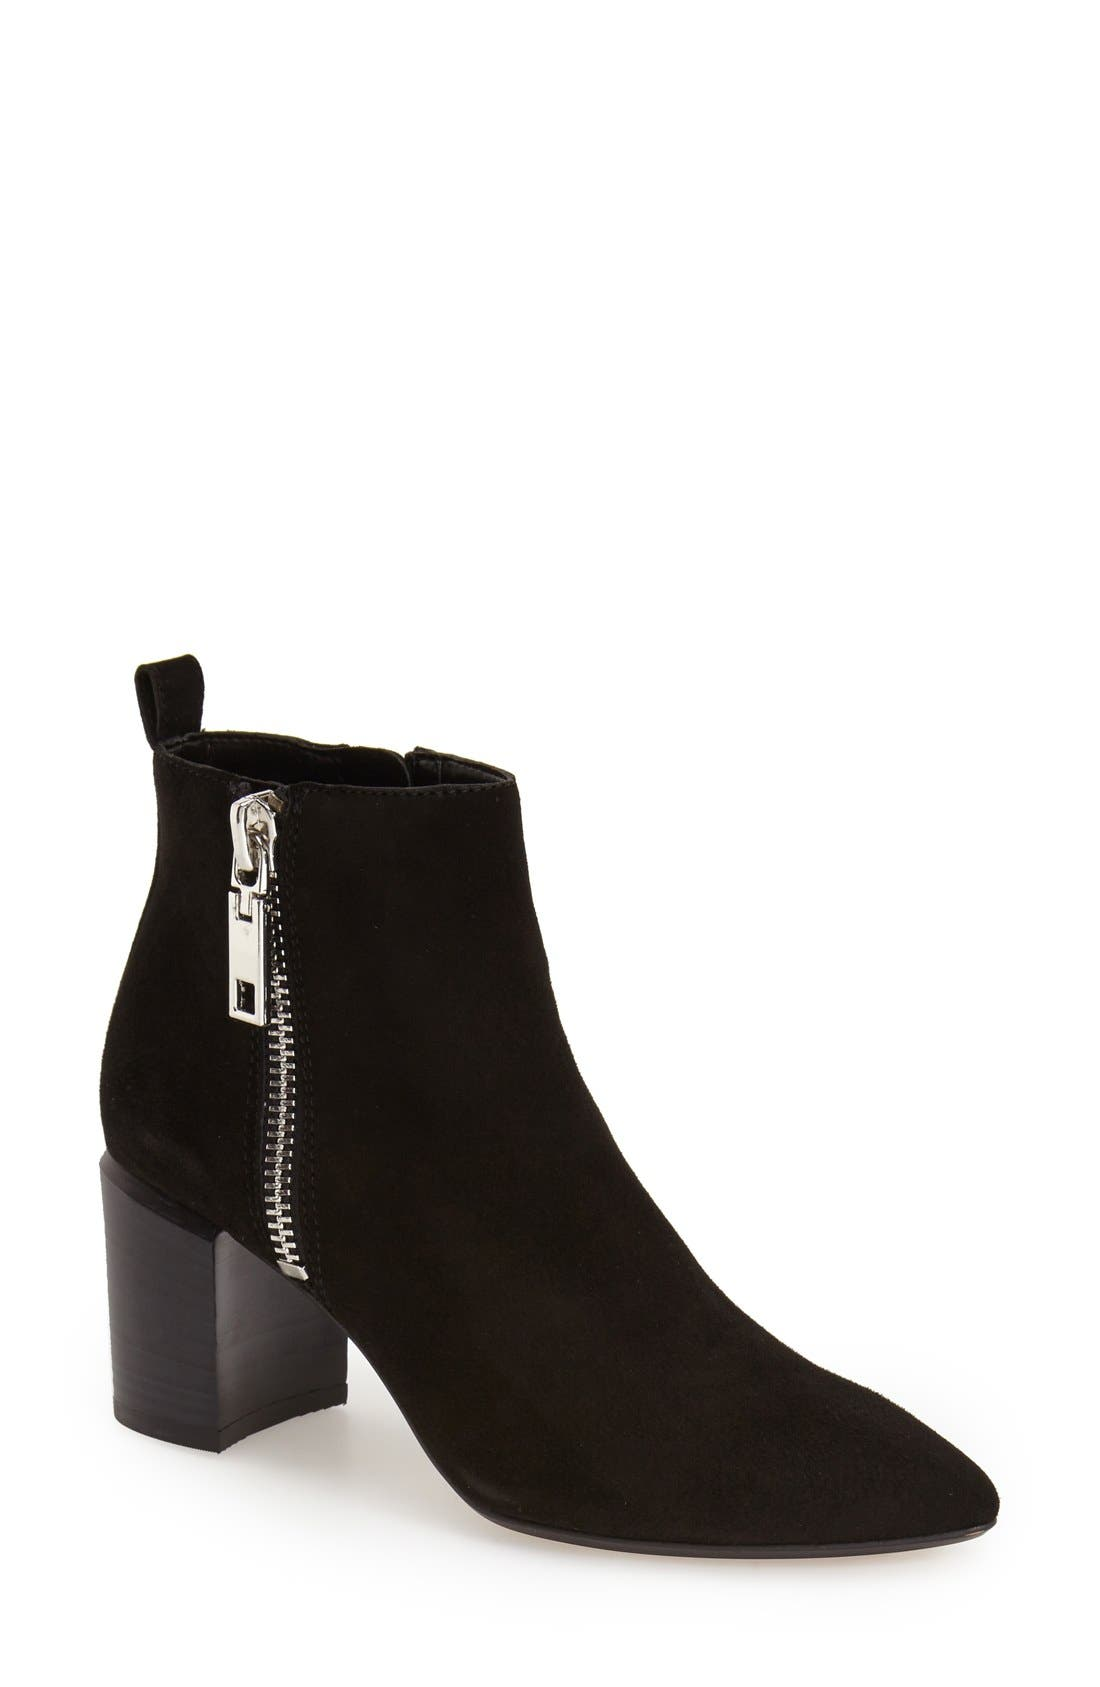 Main Image - DolceVita 'Ginnee' Pointy Toe Ankle Bootie(Women)